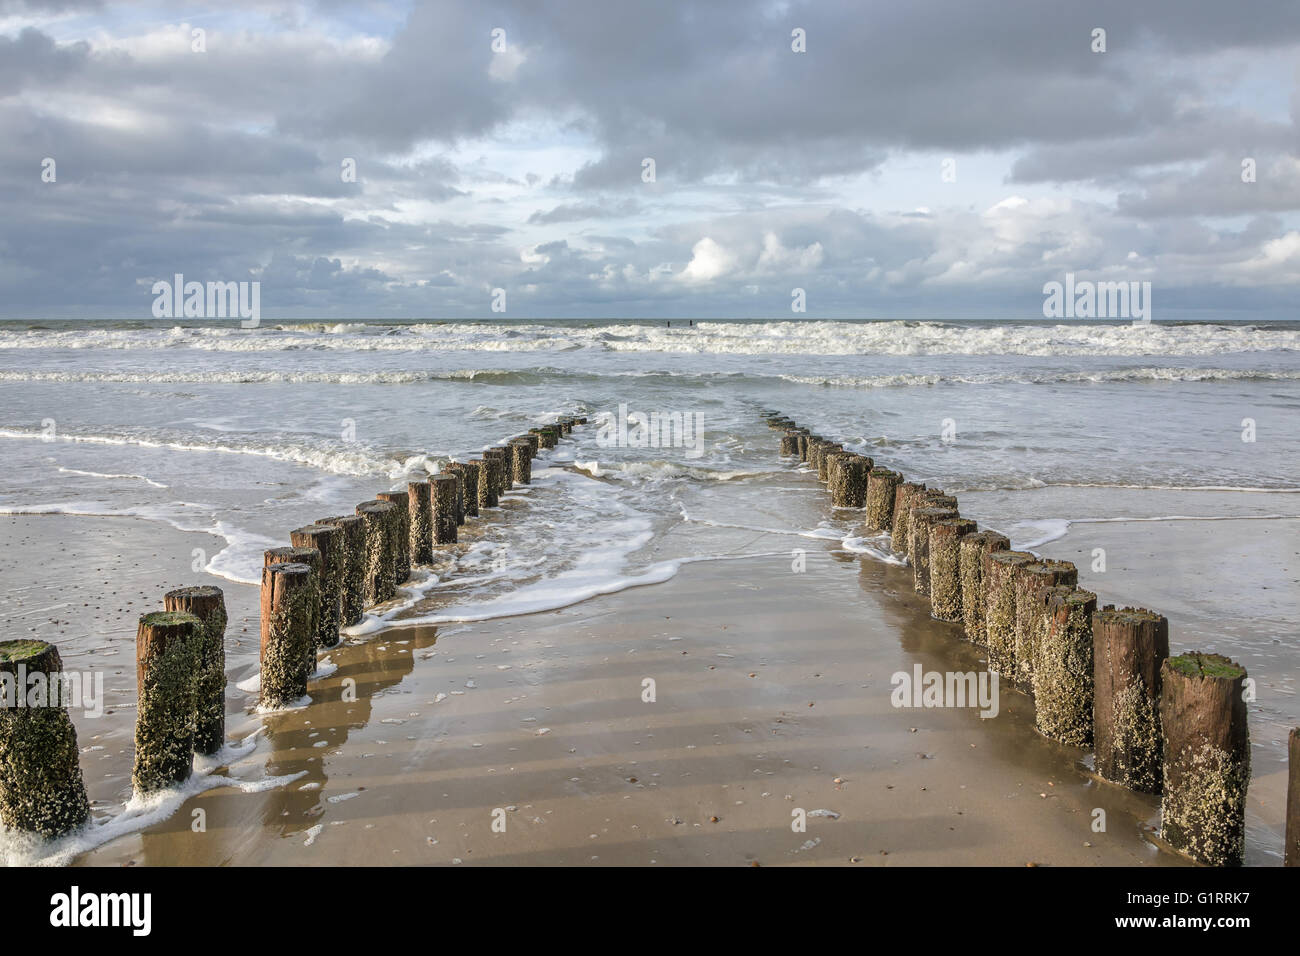 Breakwaters on the coast of The North Sea - Stock Image